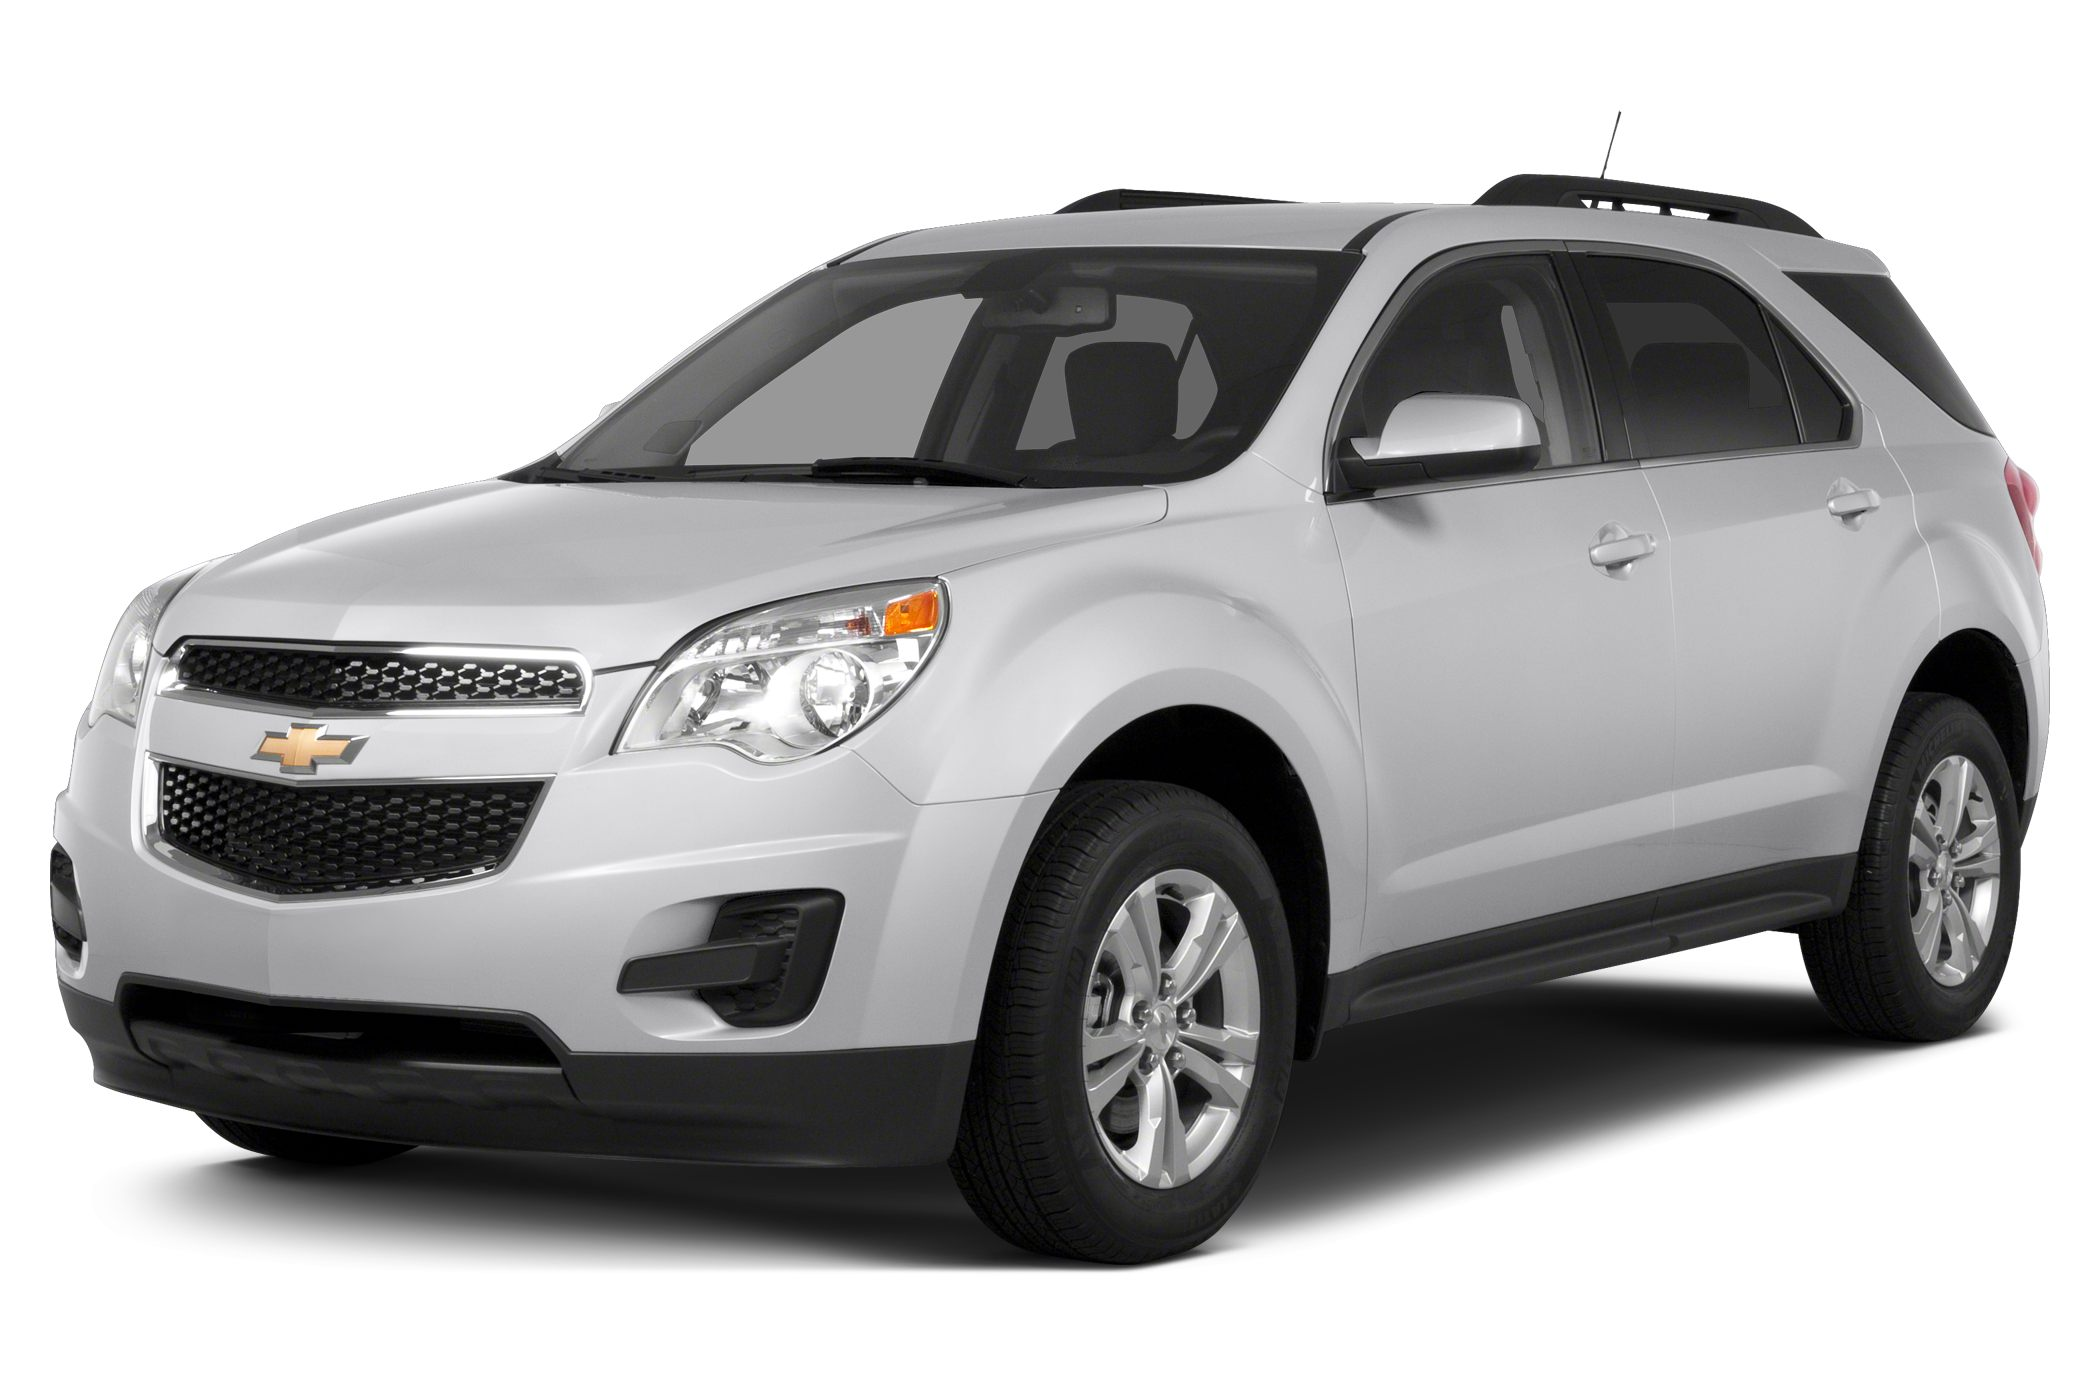 2015 Chevrolet Equinox 1LT SUV for sale in Westfield for $30,090 with 0 miles